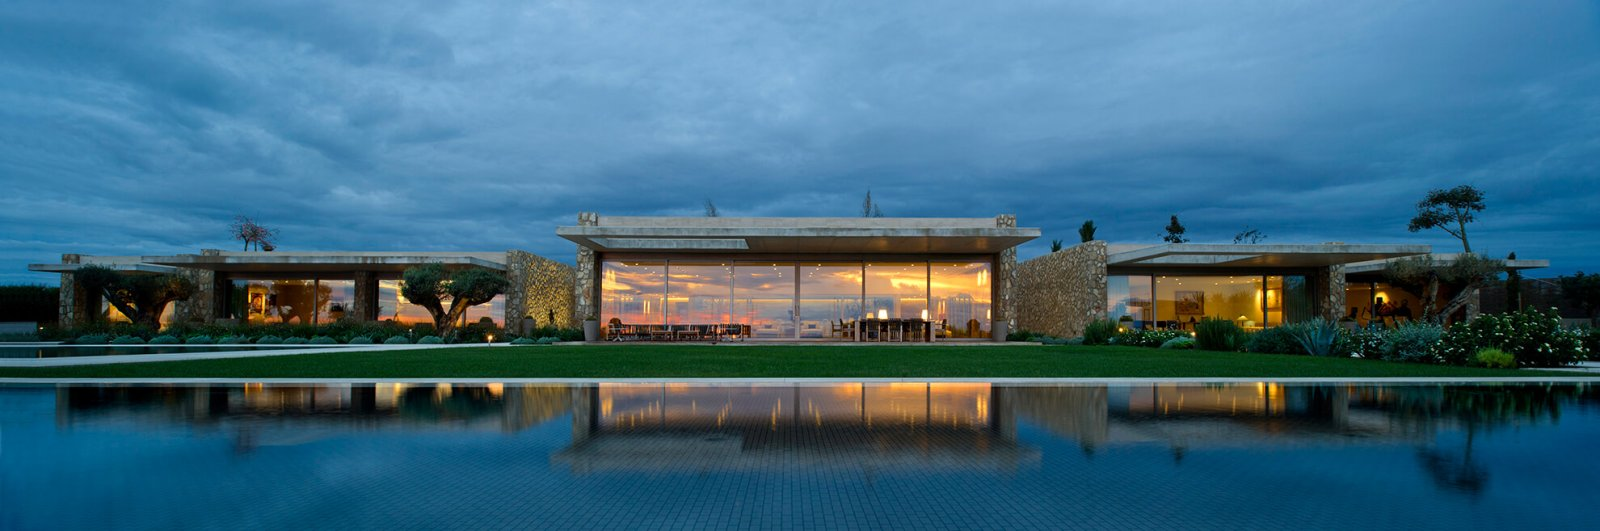 Panoramic view of the london house with three separate areas and a swimming pool along these